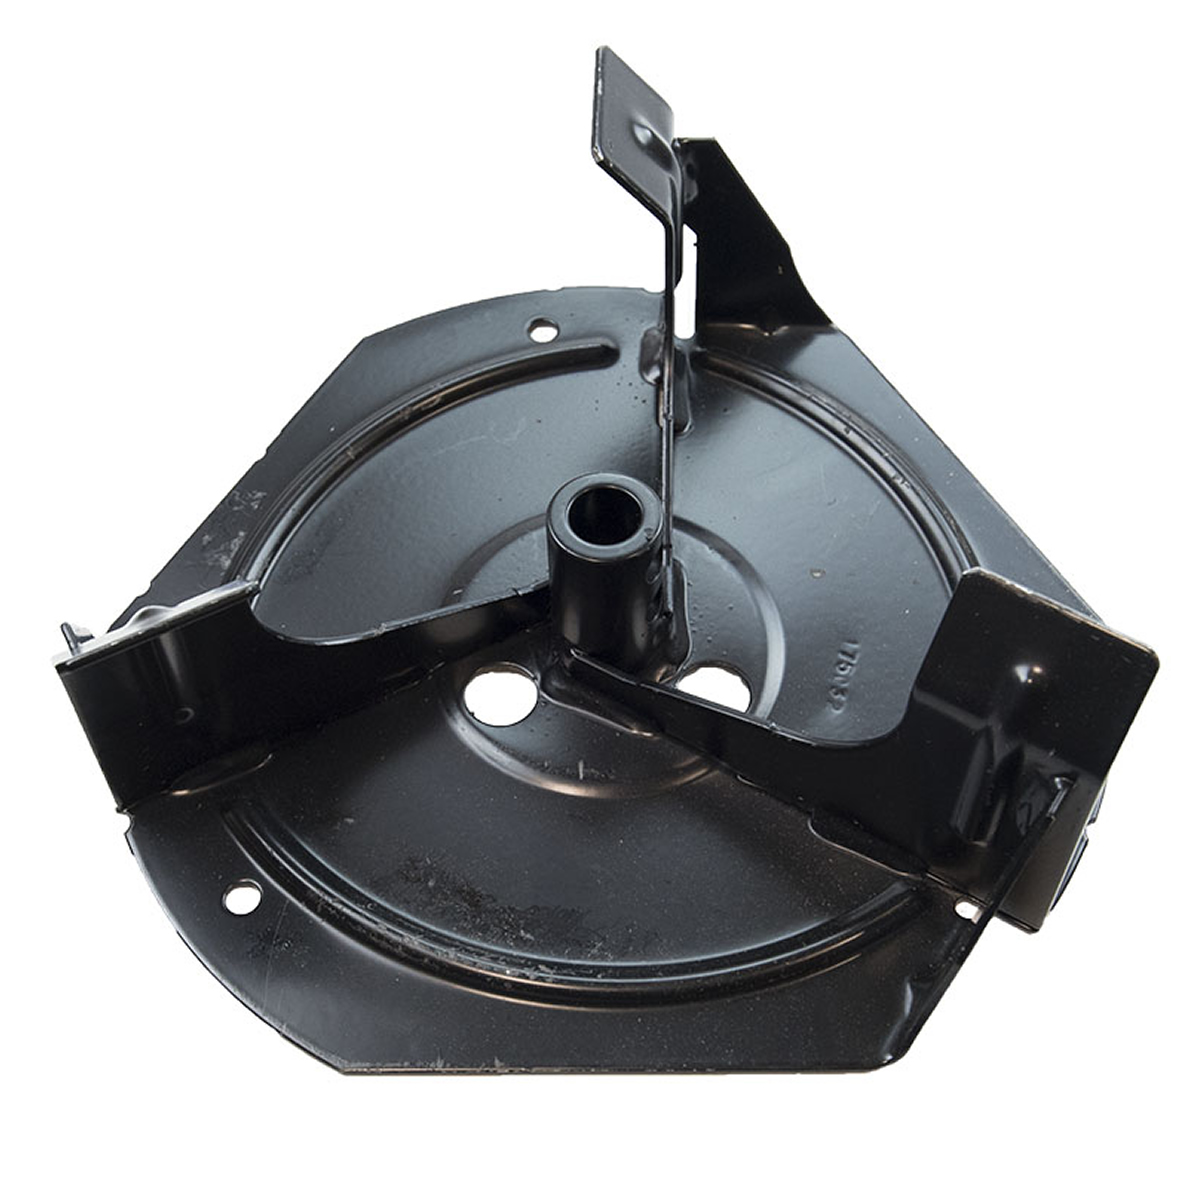 Husqvarna 586607202 Snow Blower Impeller Black Steel